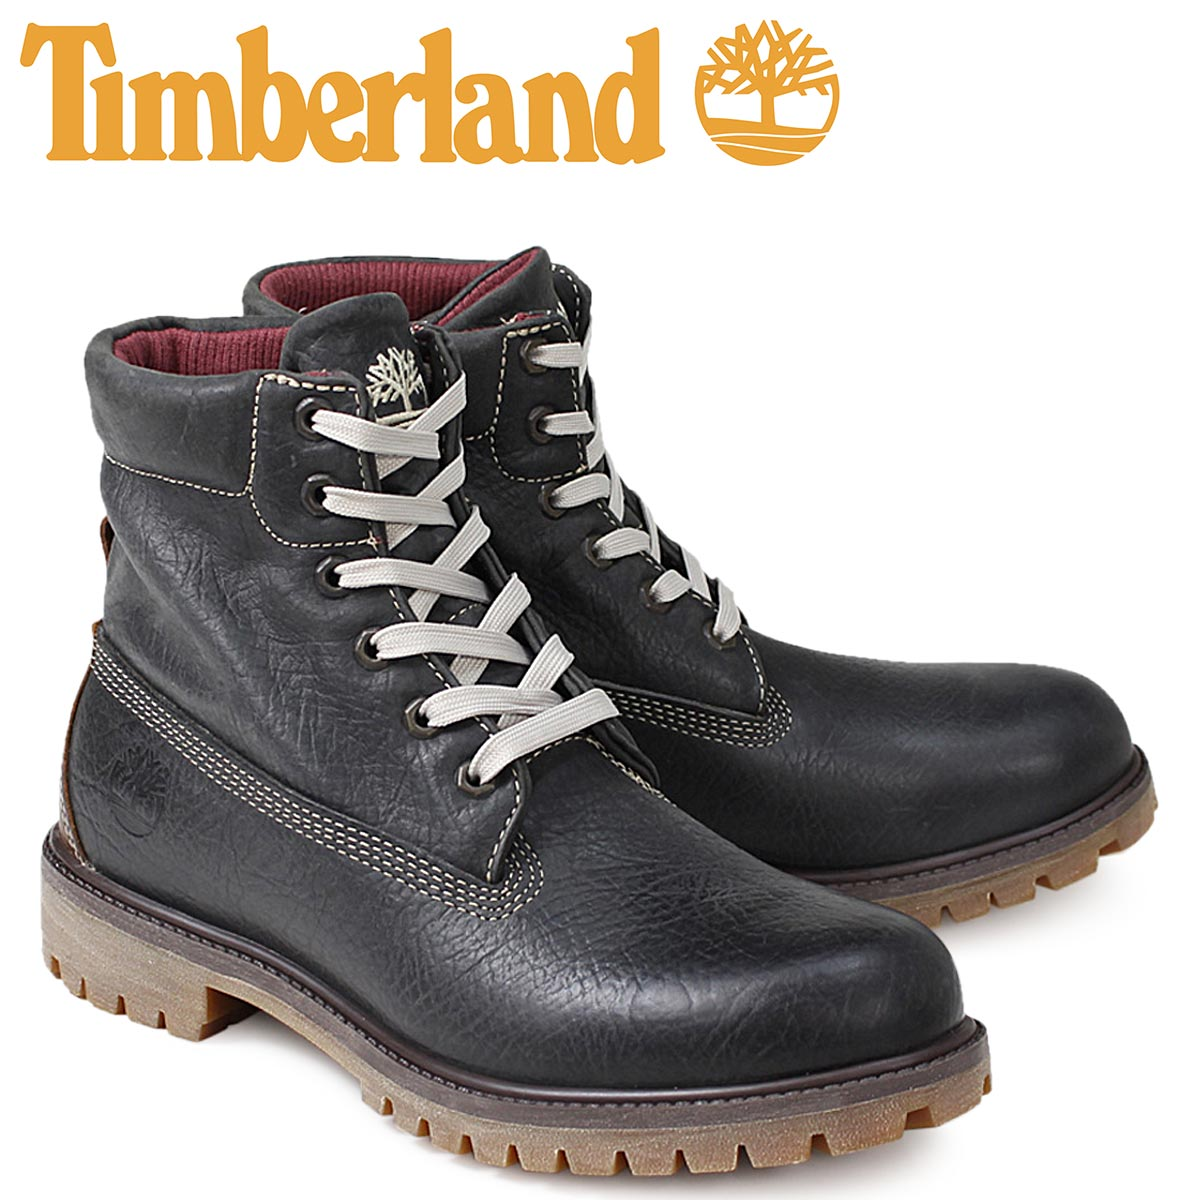 Allsports Timberland Roll Top Boots Rolltop A17mc D Island Shoes Hikers Mens Fashionable Brown Fully Waterproof Since From A Relaxing Weekend Can Be Total Coordination Up To Casual Styling During The Business Week